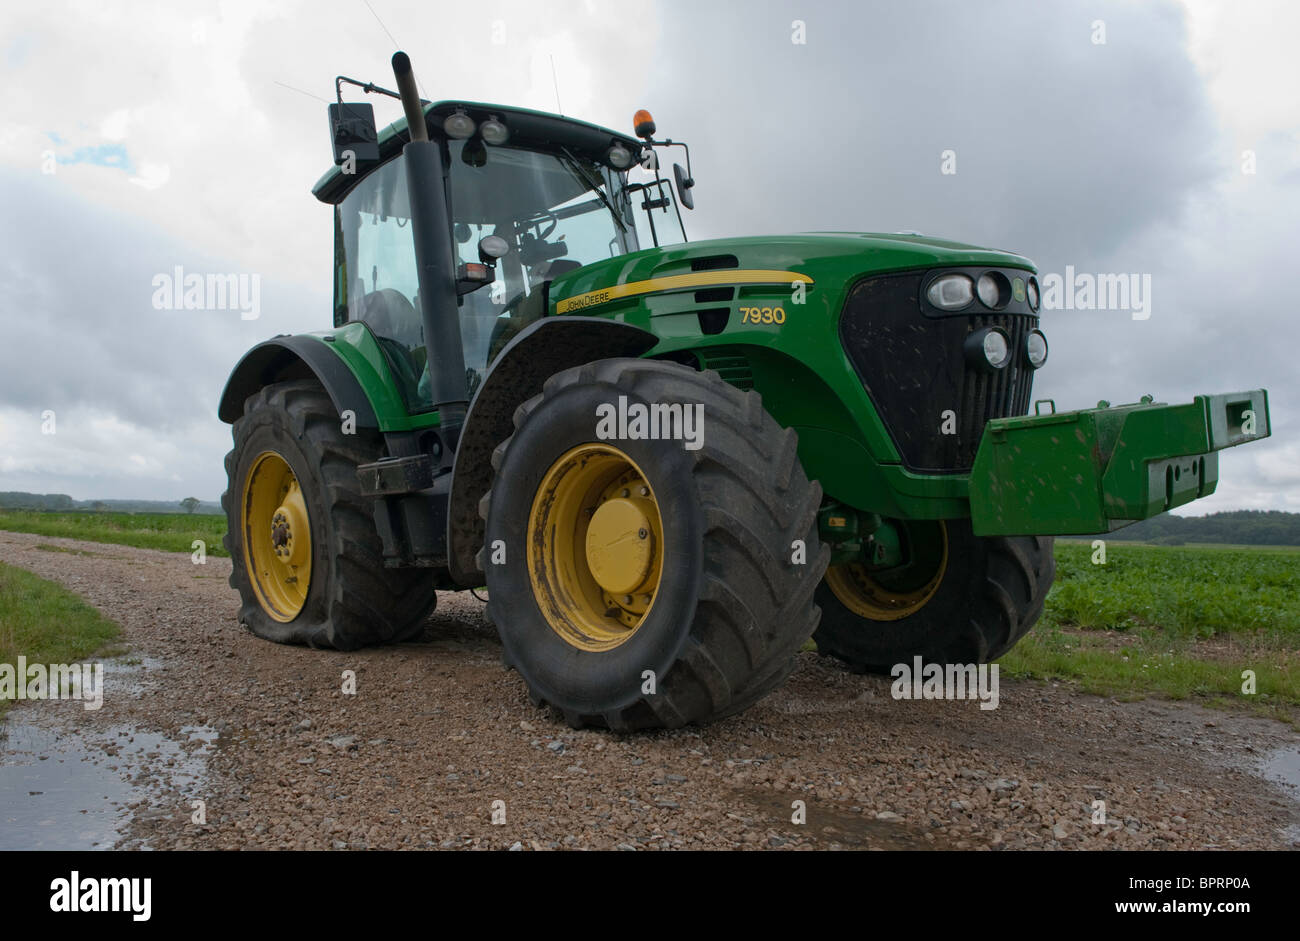 John Deere Tractor Tyre : John deere tractor uk stock photos